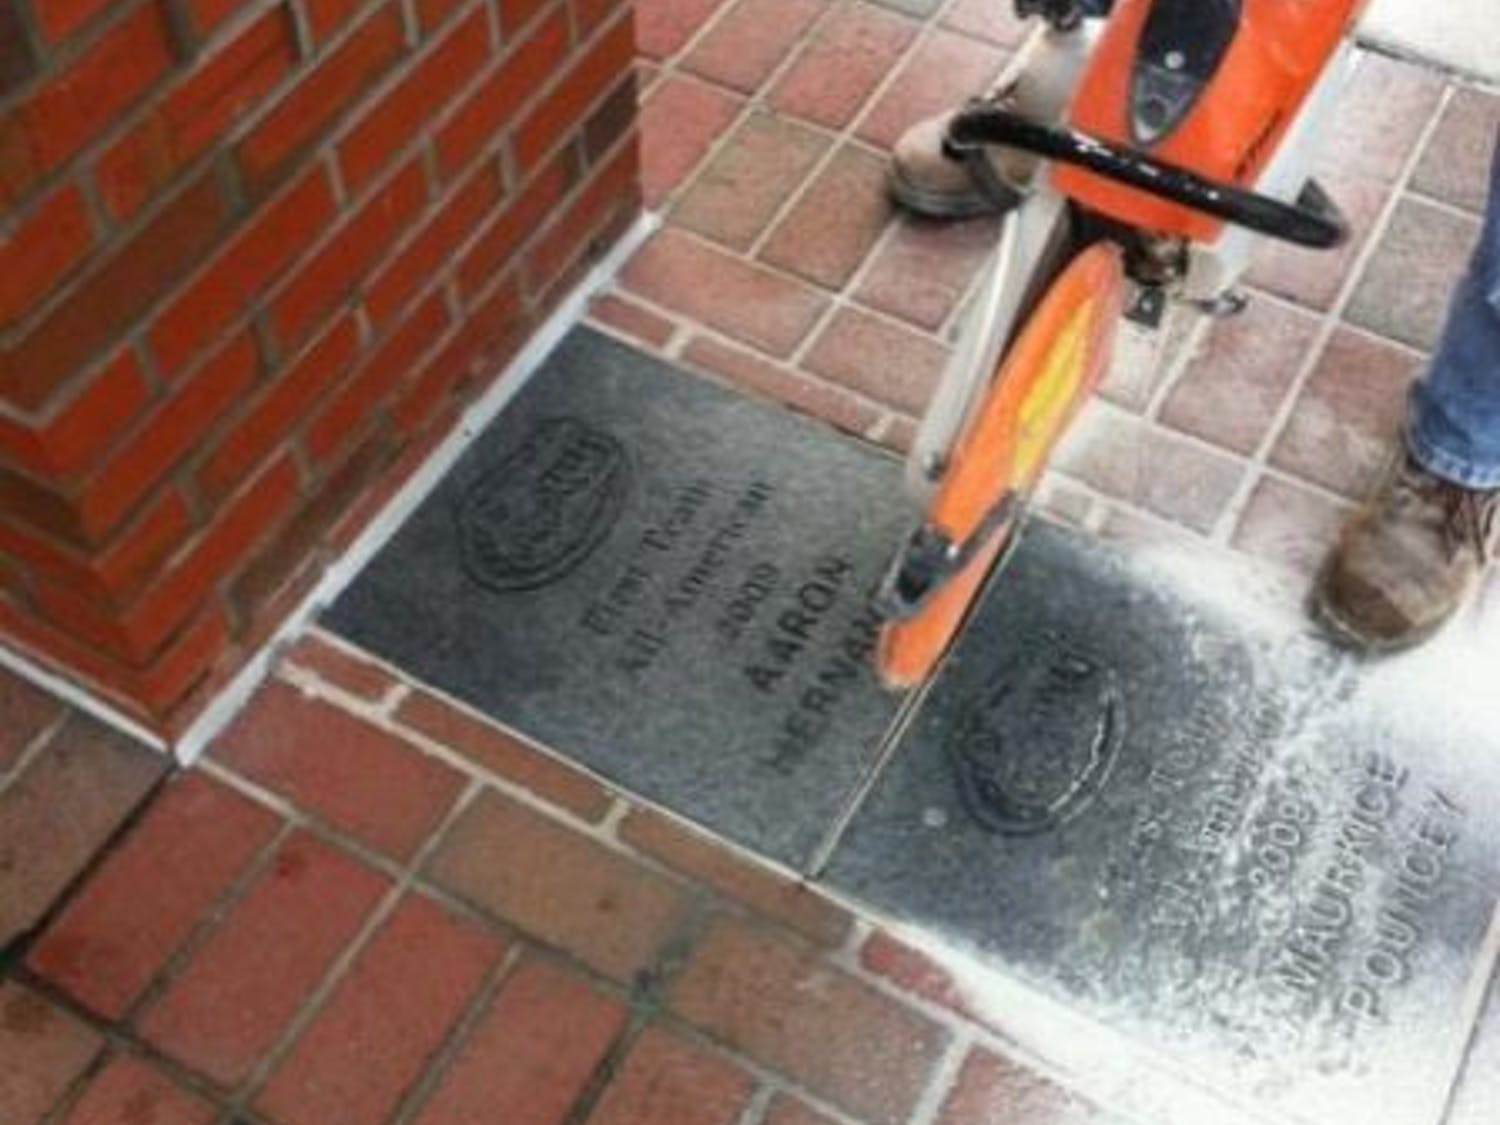 """Aaron Hernandez's All-America brick is removed from outside the James W. """"Bill"""" Heavener Football Complex on Thursday. UF decided to remove the brick while the former UF tight end faces murder charges.  Ed. note: The caption originally misstated the location of the brick in one location. It is not at Gator Walk, but outside the Heavener Football Complex."""